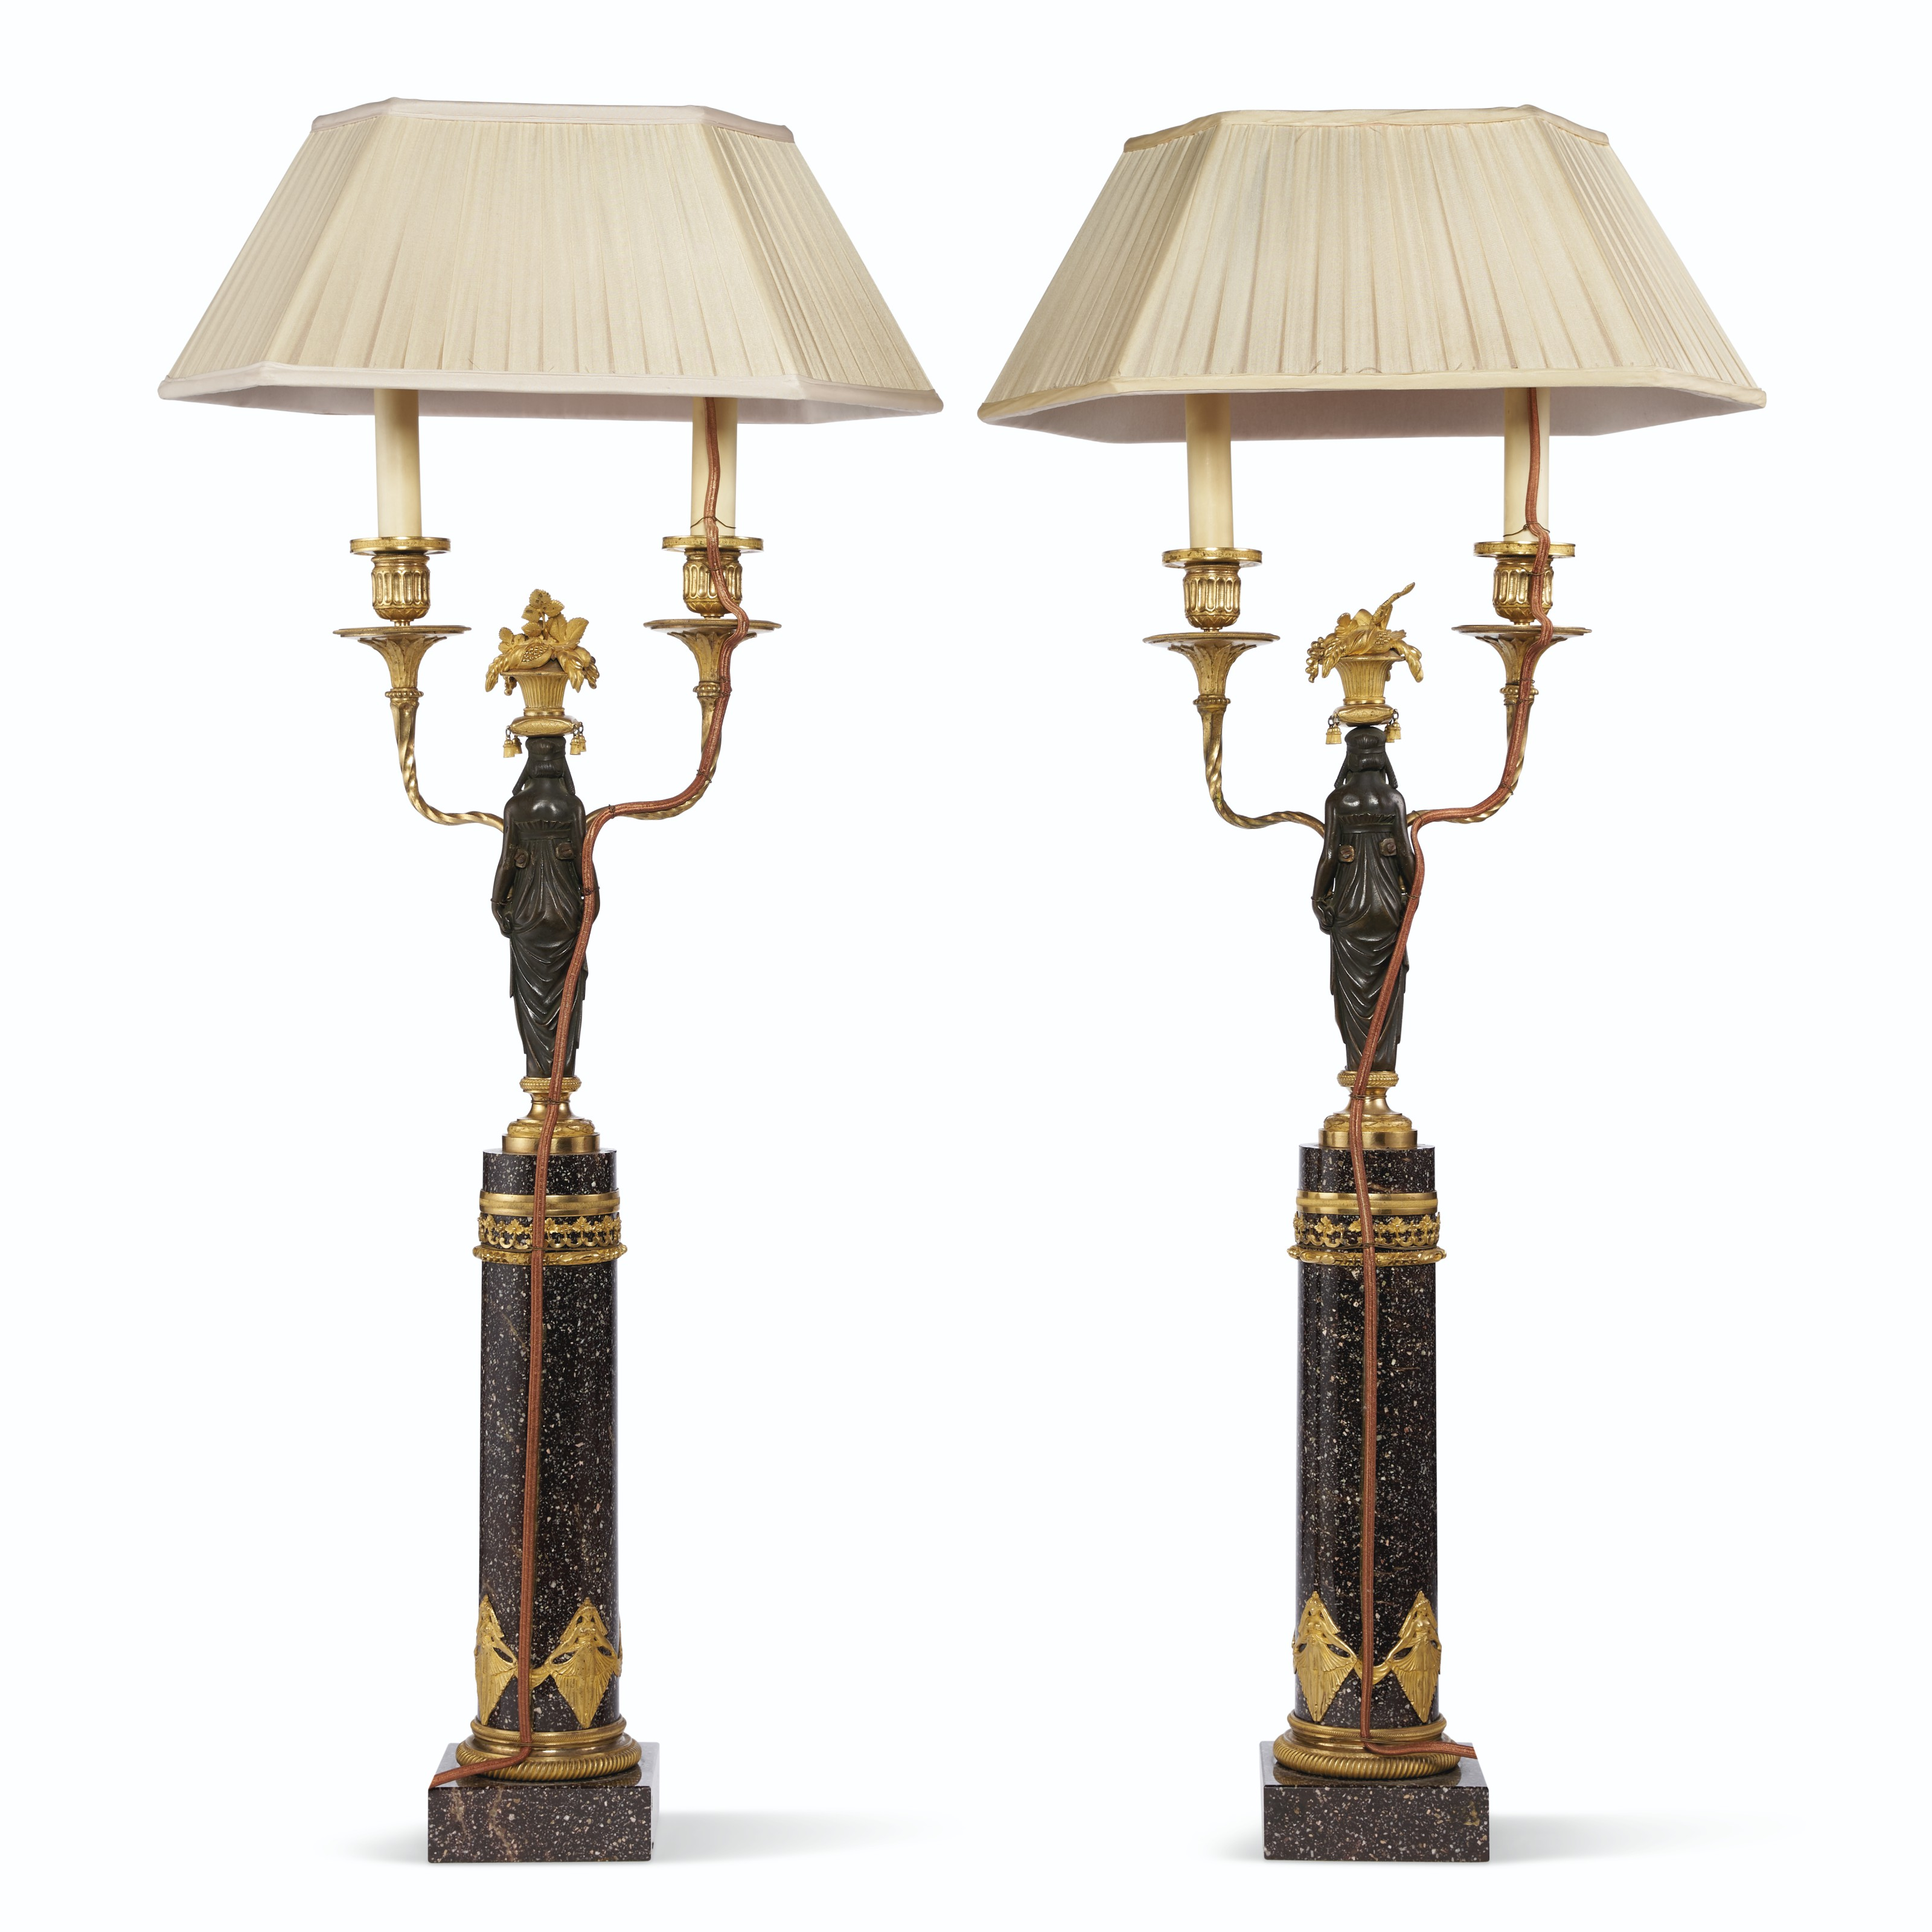 A PAIR OF SWEDISH PATINATED BRONZE, ORMOLU AND SVART BLYBERG PORPHYRY TWO-LIGHT CANDELABRA